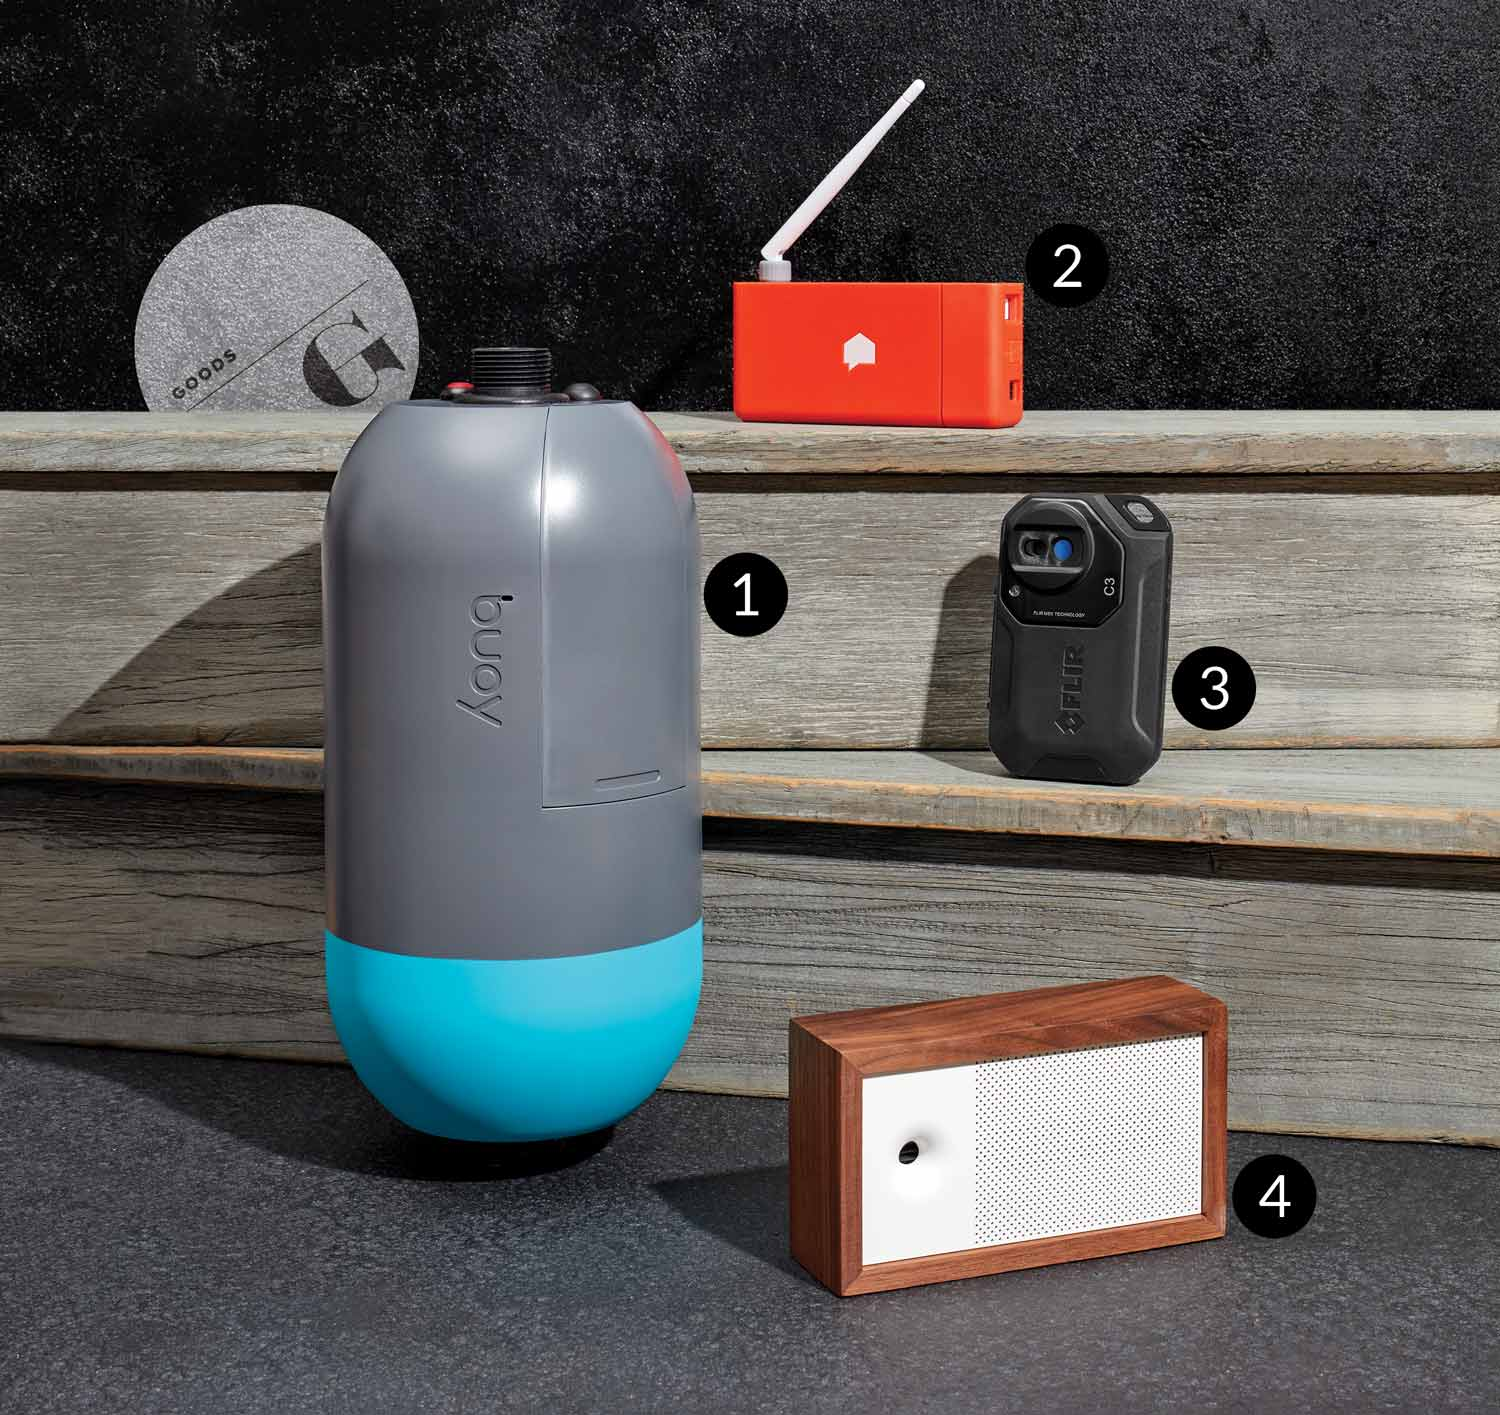 Tech that monitors your water use, air quality, and more